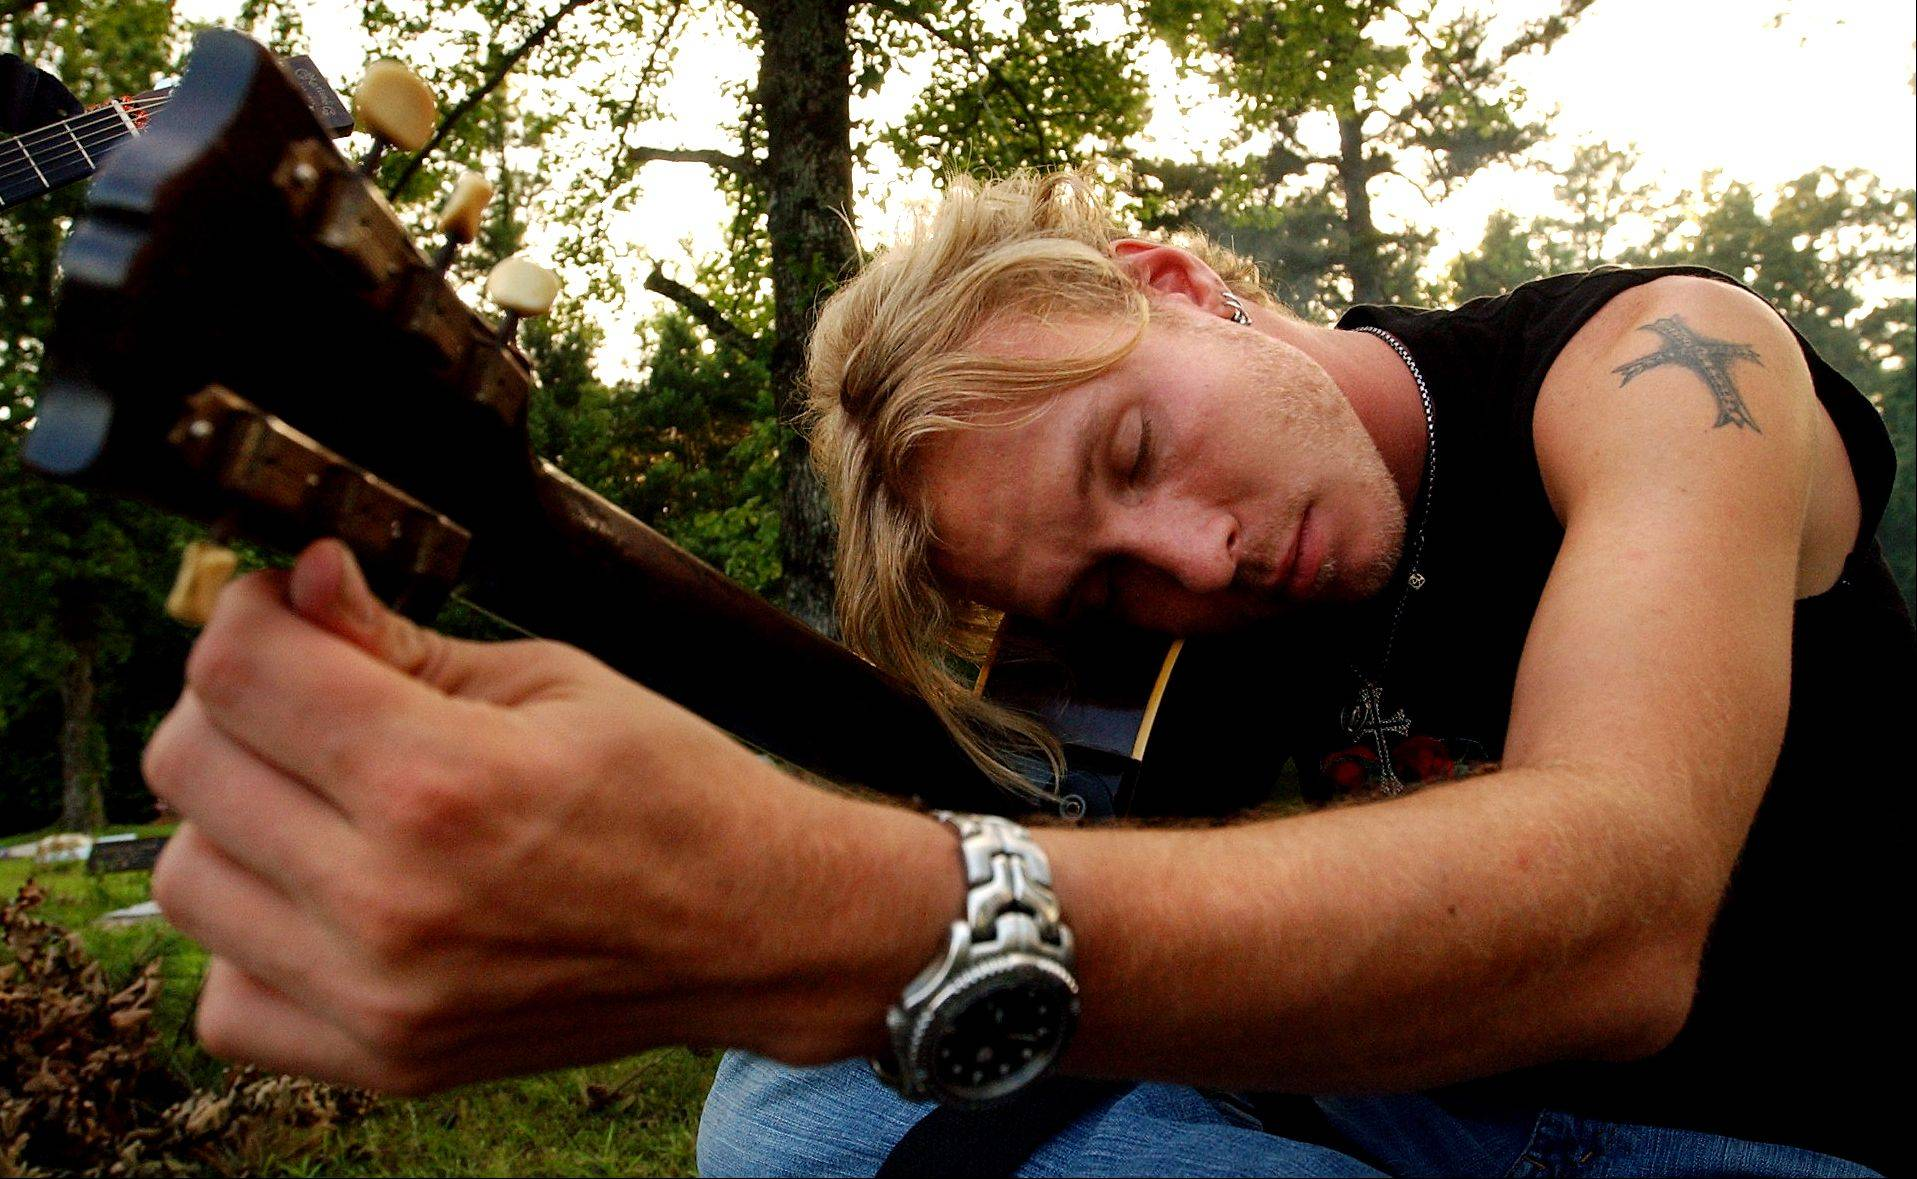 Blues musician Kenny Wayne Shepherd performs at 6 p.m. Sunday, Oct. 27, at North Central College's Wentz Concert Hall in Naperville.